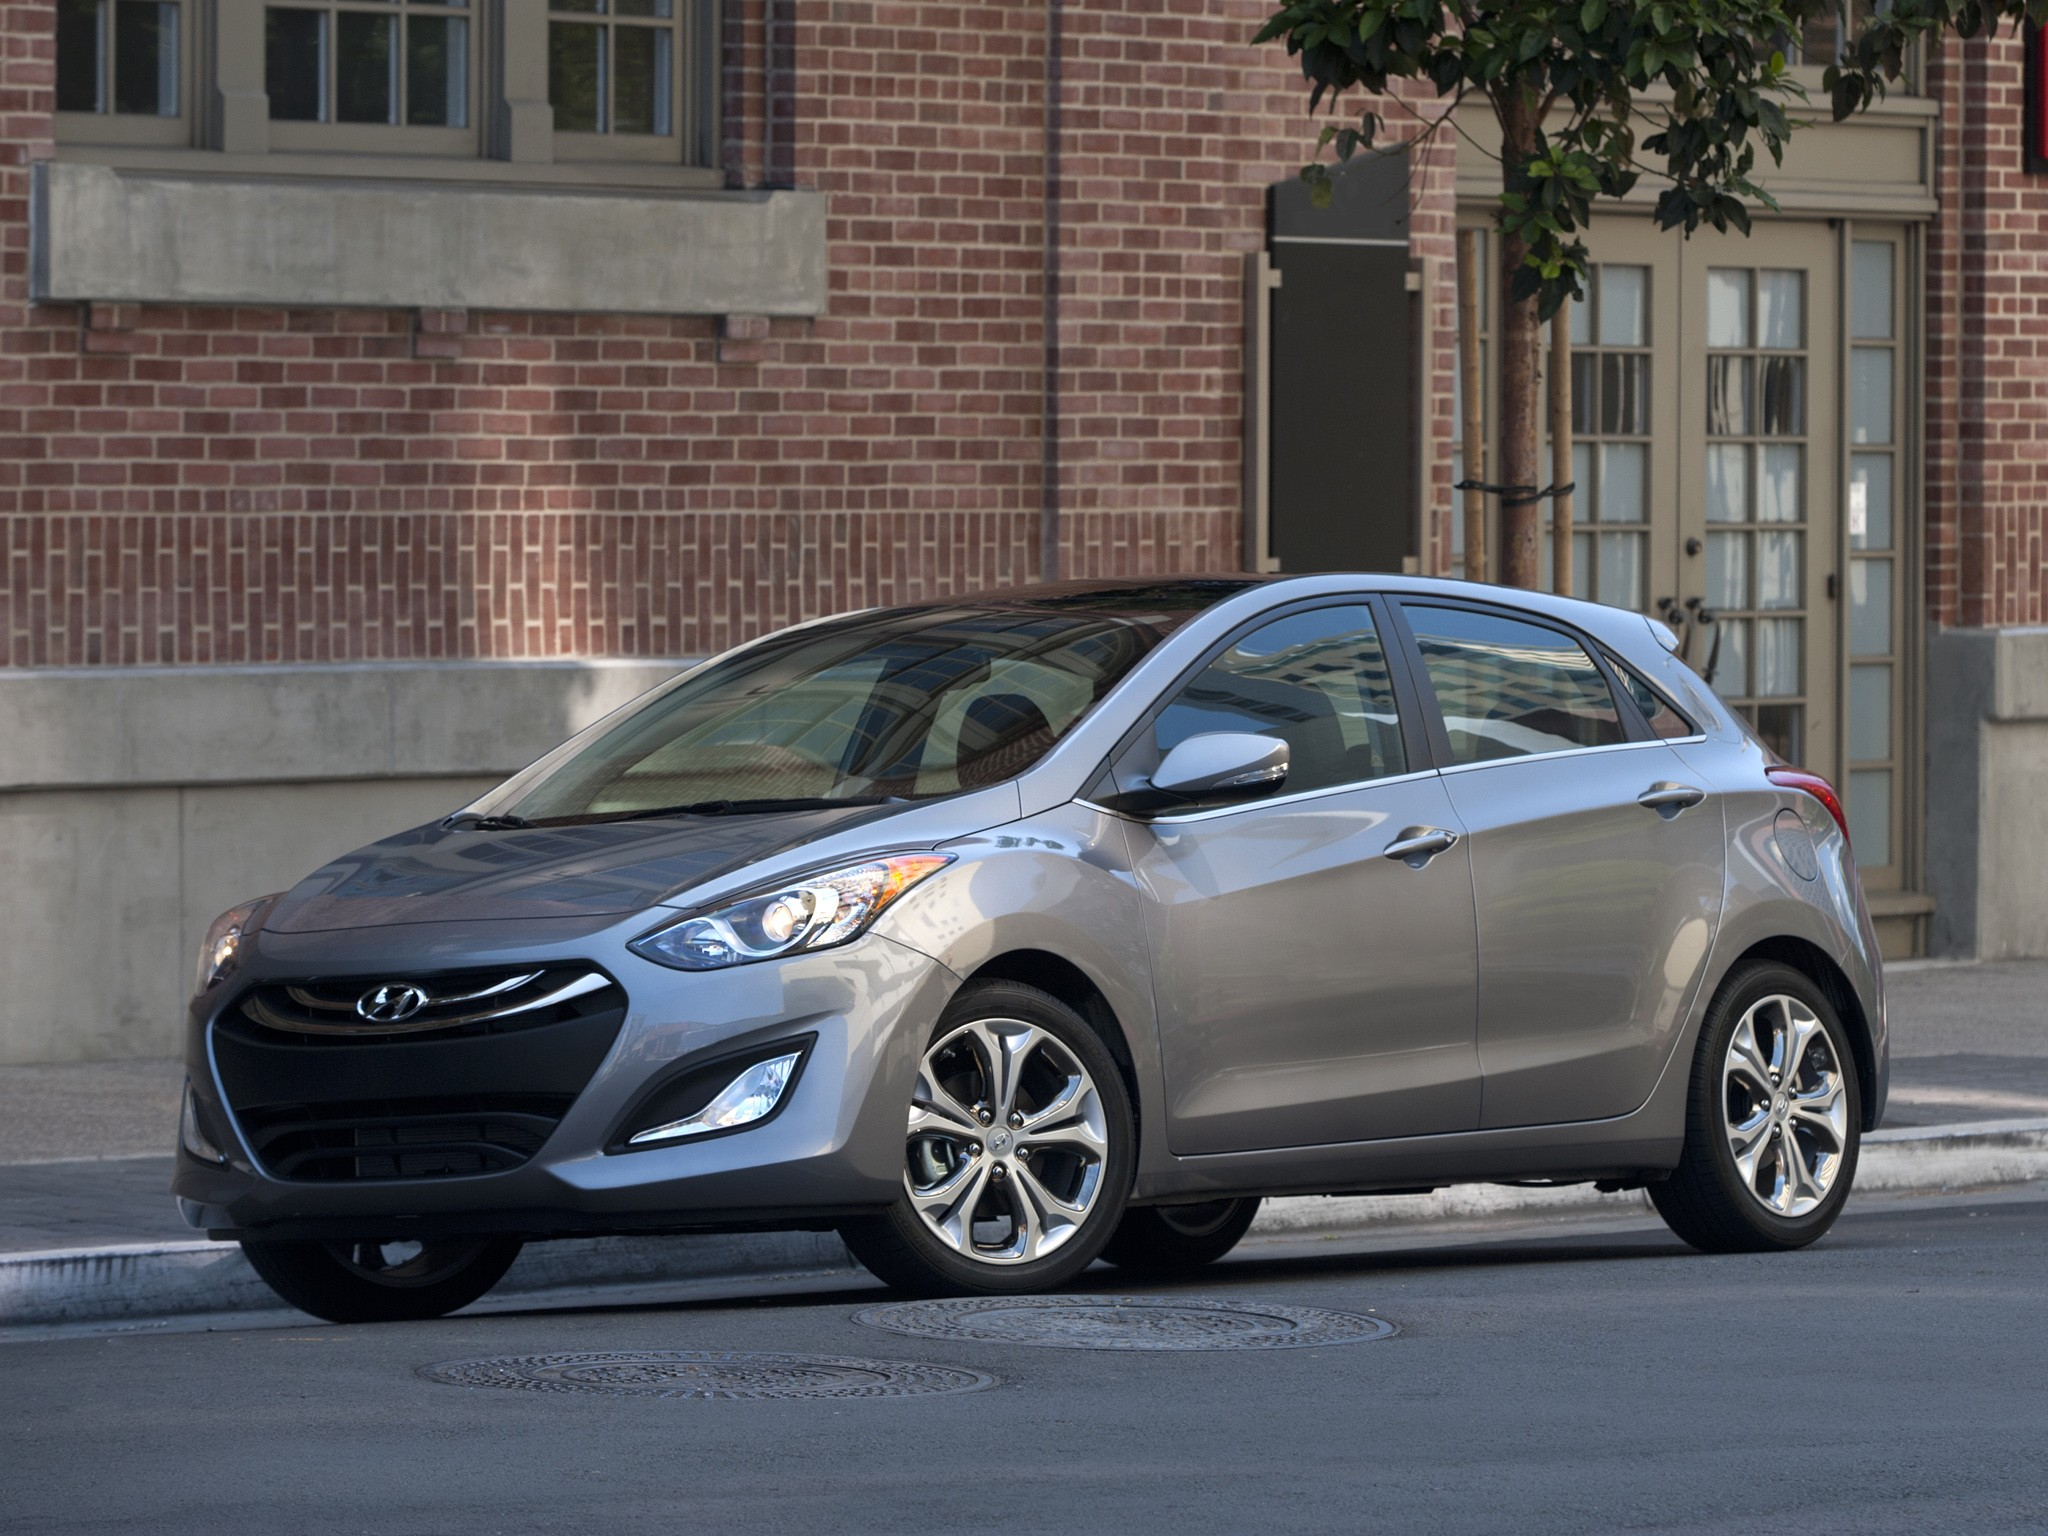 hyundai elantra gt specs 2012 2013 2014 2015 2016 2017 2018 autoevolution. Black Bedroom Furniture Sets. Home Design Ideas